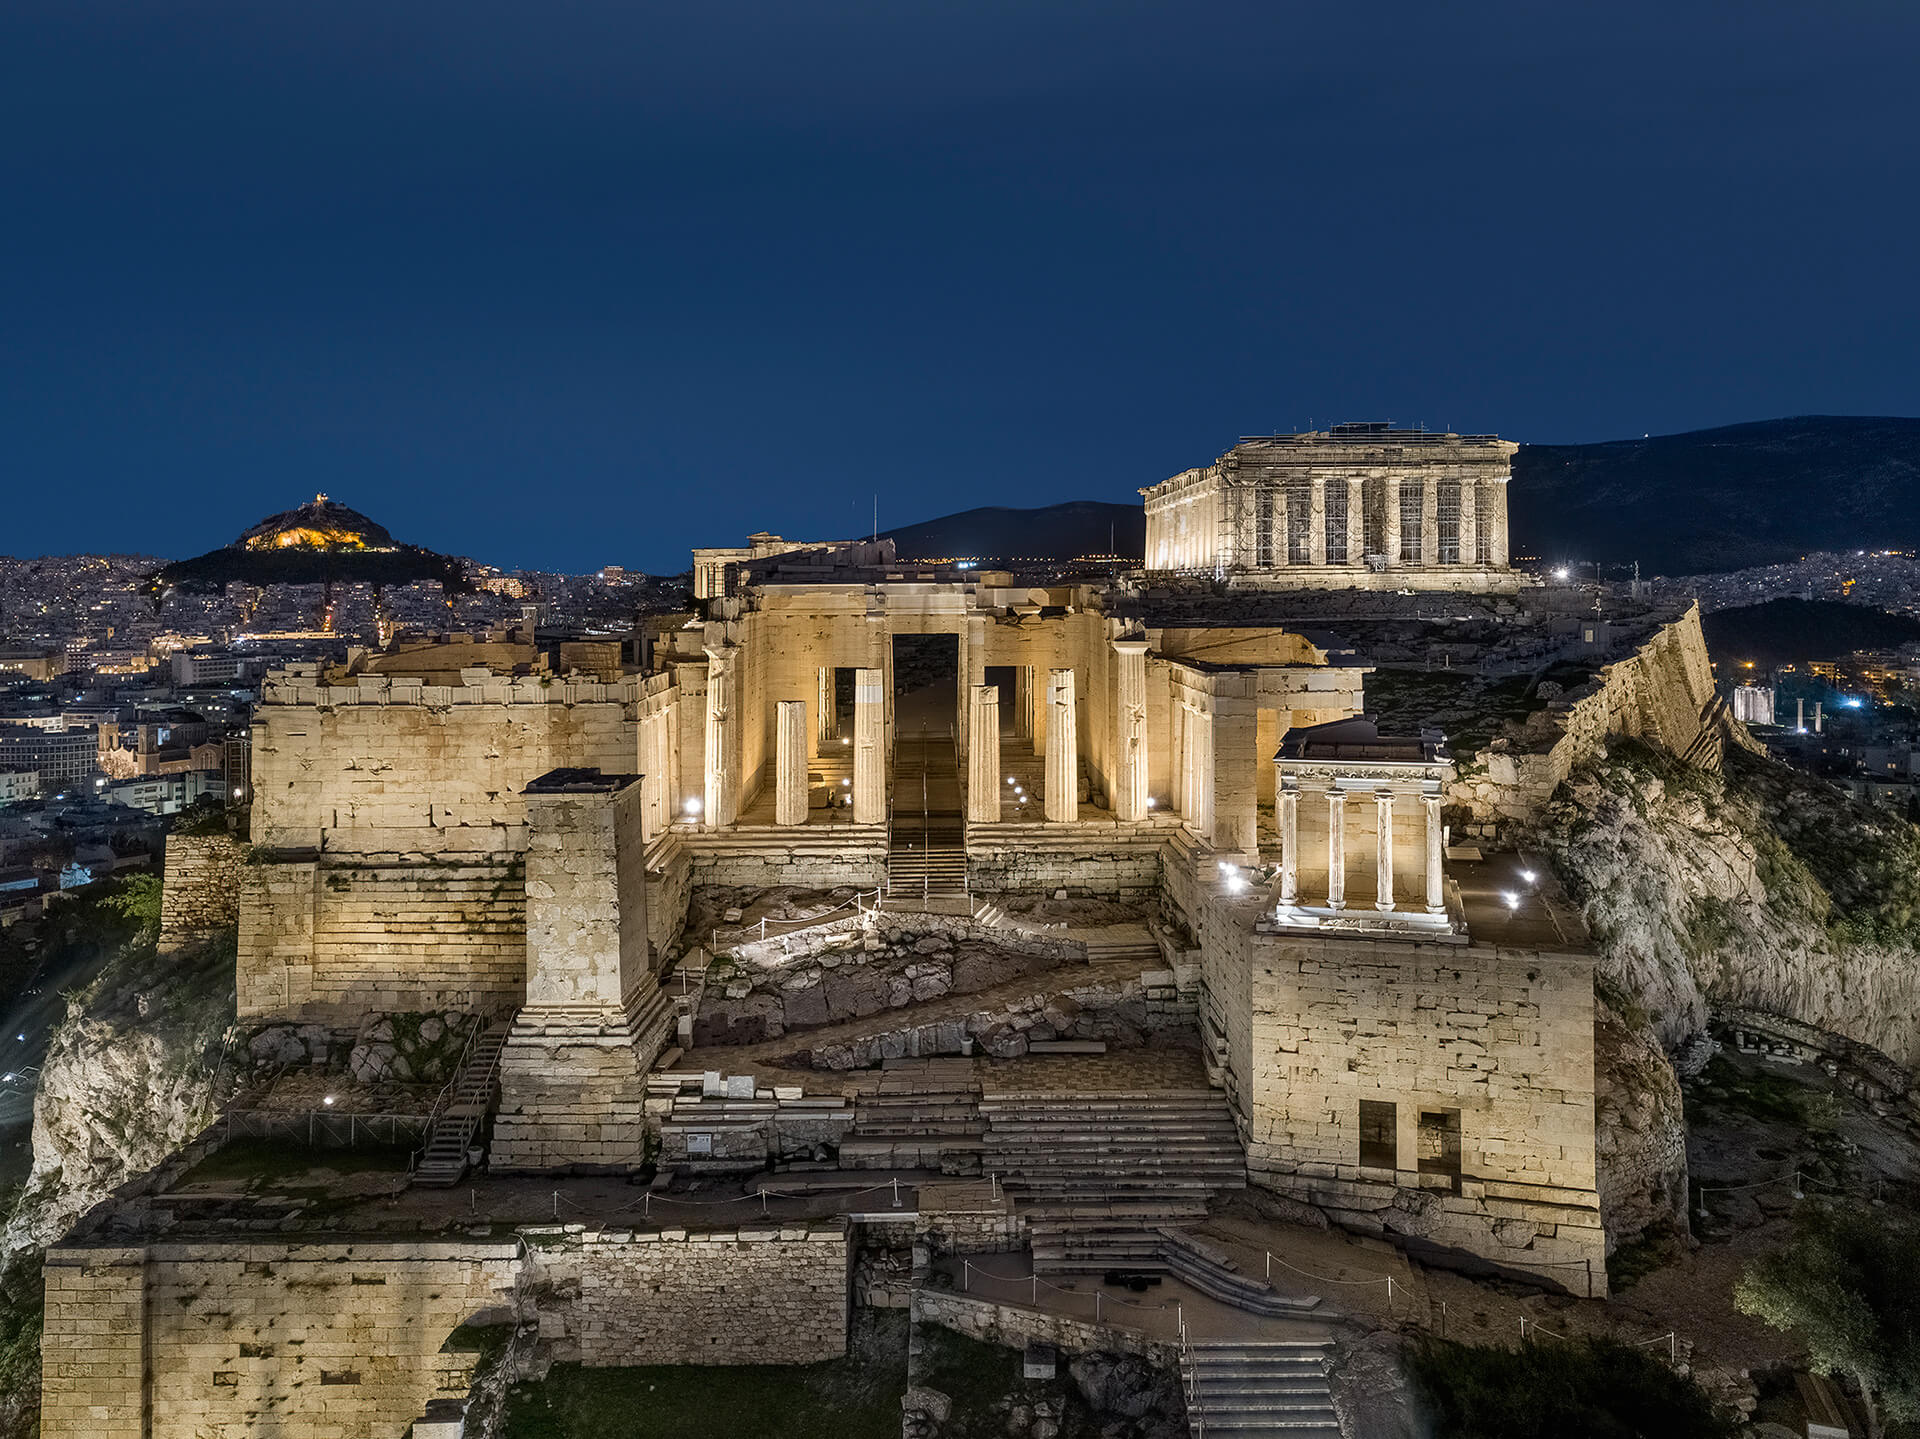 The Parthenon is one of the nine landmarks that have been completely re-lit | Acropolis of Athens by Onassis Foundation designed by Eleftheria Deko | STIRworld